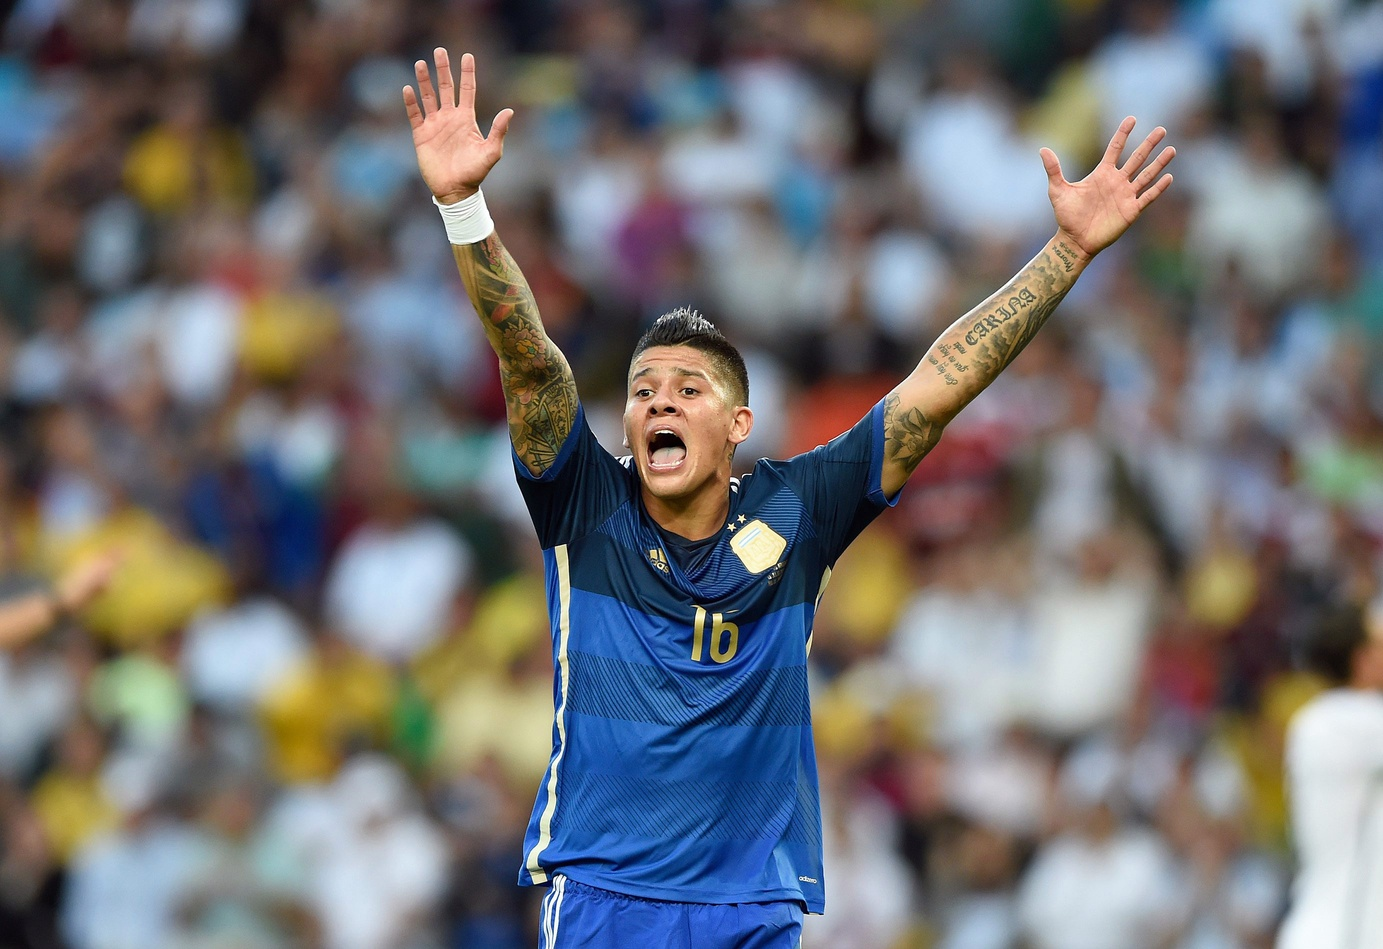 Manchester United Confirms £16m Signing of Marcos Rojo, While Nani Joins Sporting On Loan